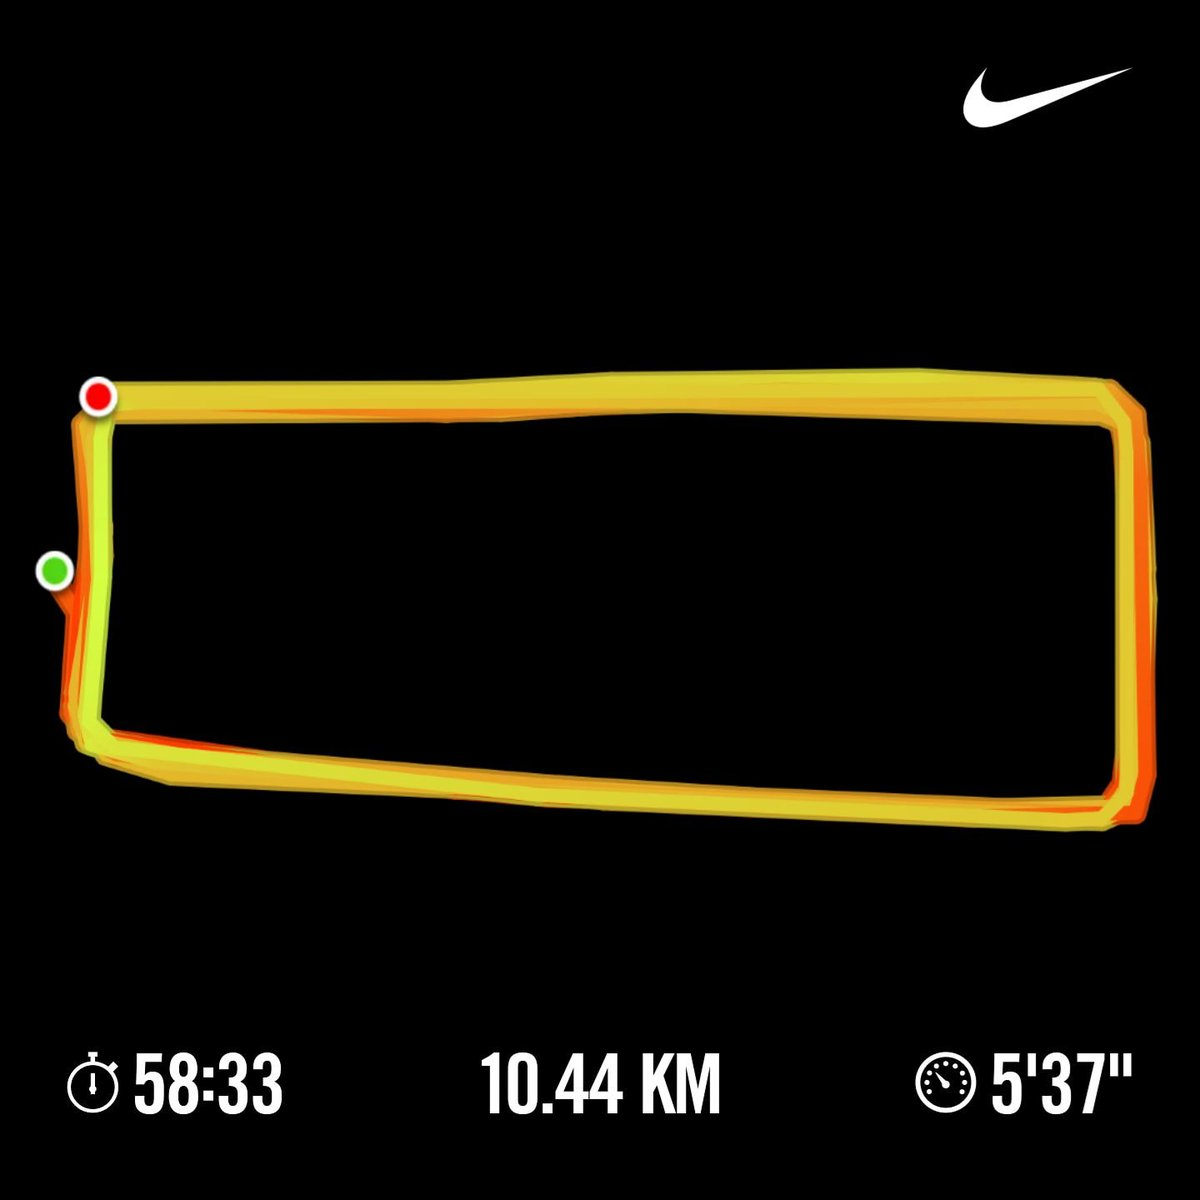 10.44km  Another day another run  CNN shey we will rest after today abi?  #nikeplus #fitfam #runner #strava #GoogleFit #itsAmarathon #ItsALifestyle #IamAccountable #yourturn   ✅👌🇳🇬🔥💪🏃‍♂️✌